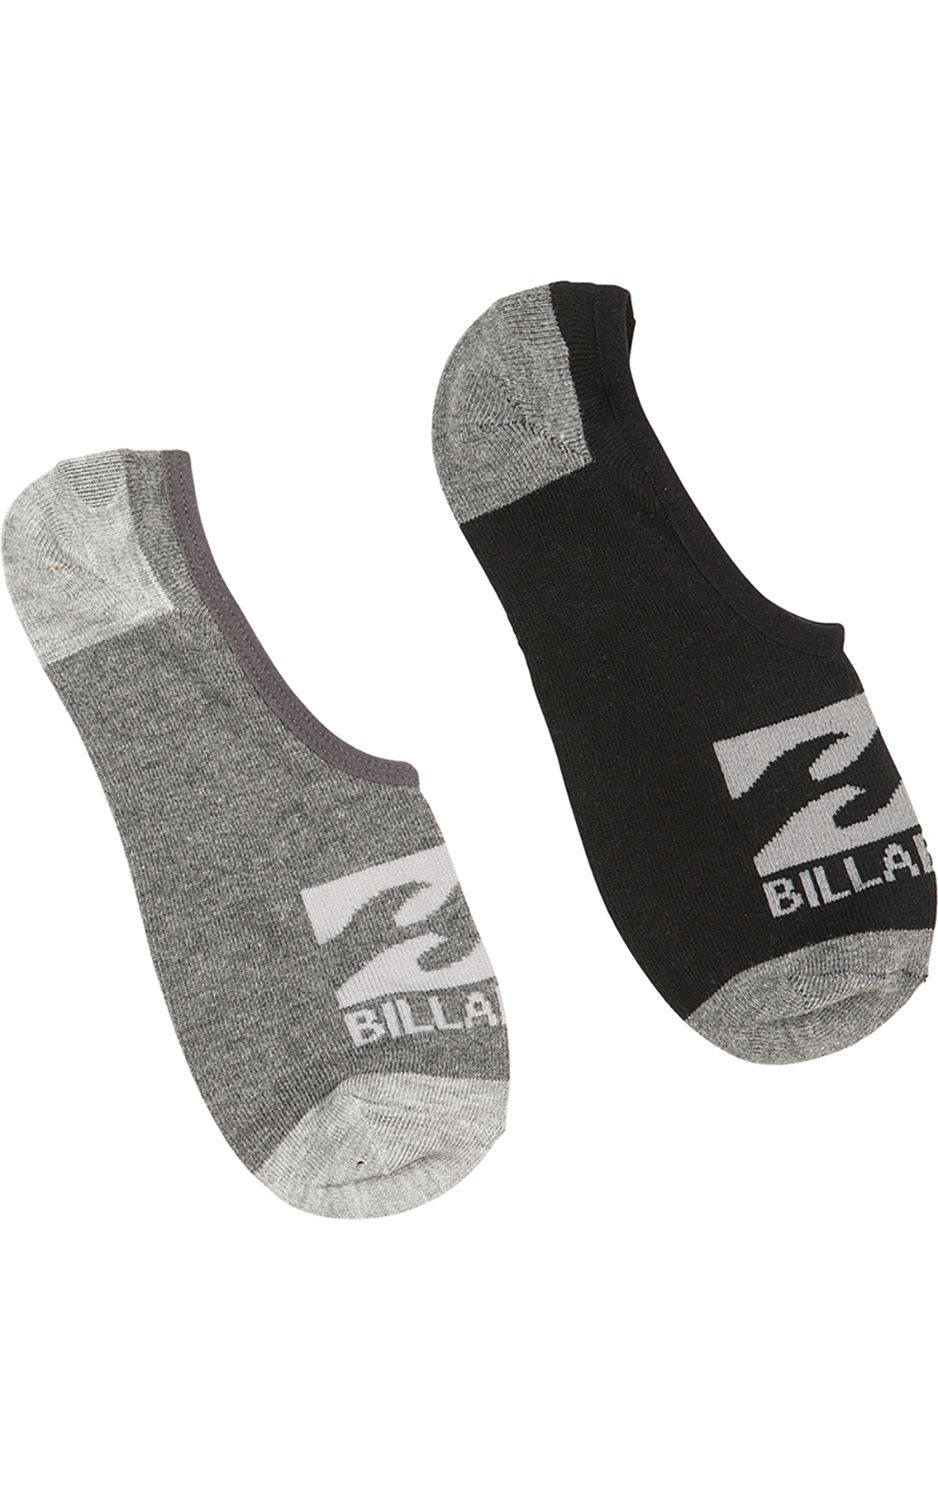 Meias Billabong INVISIBLE 2 PACK Assorted